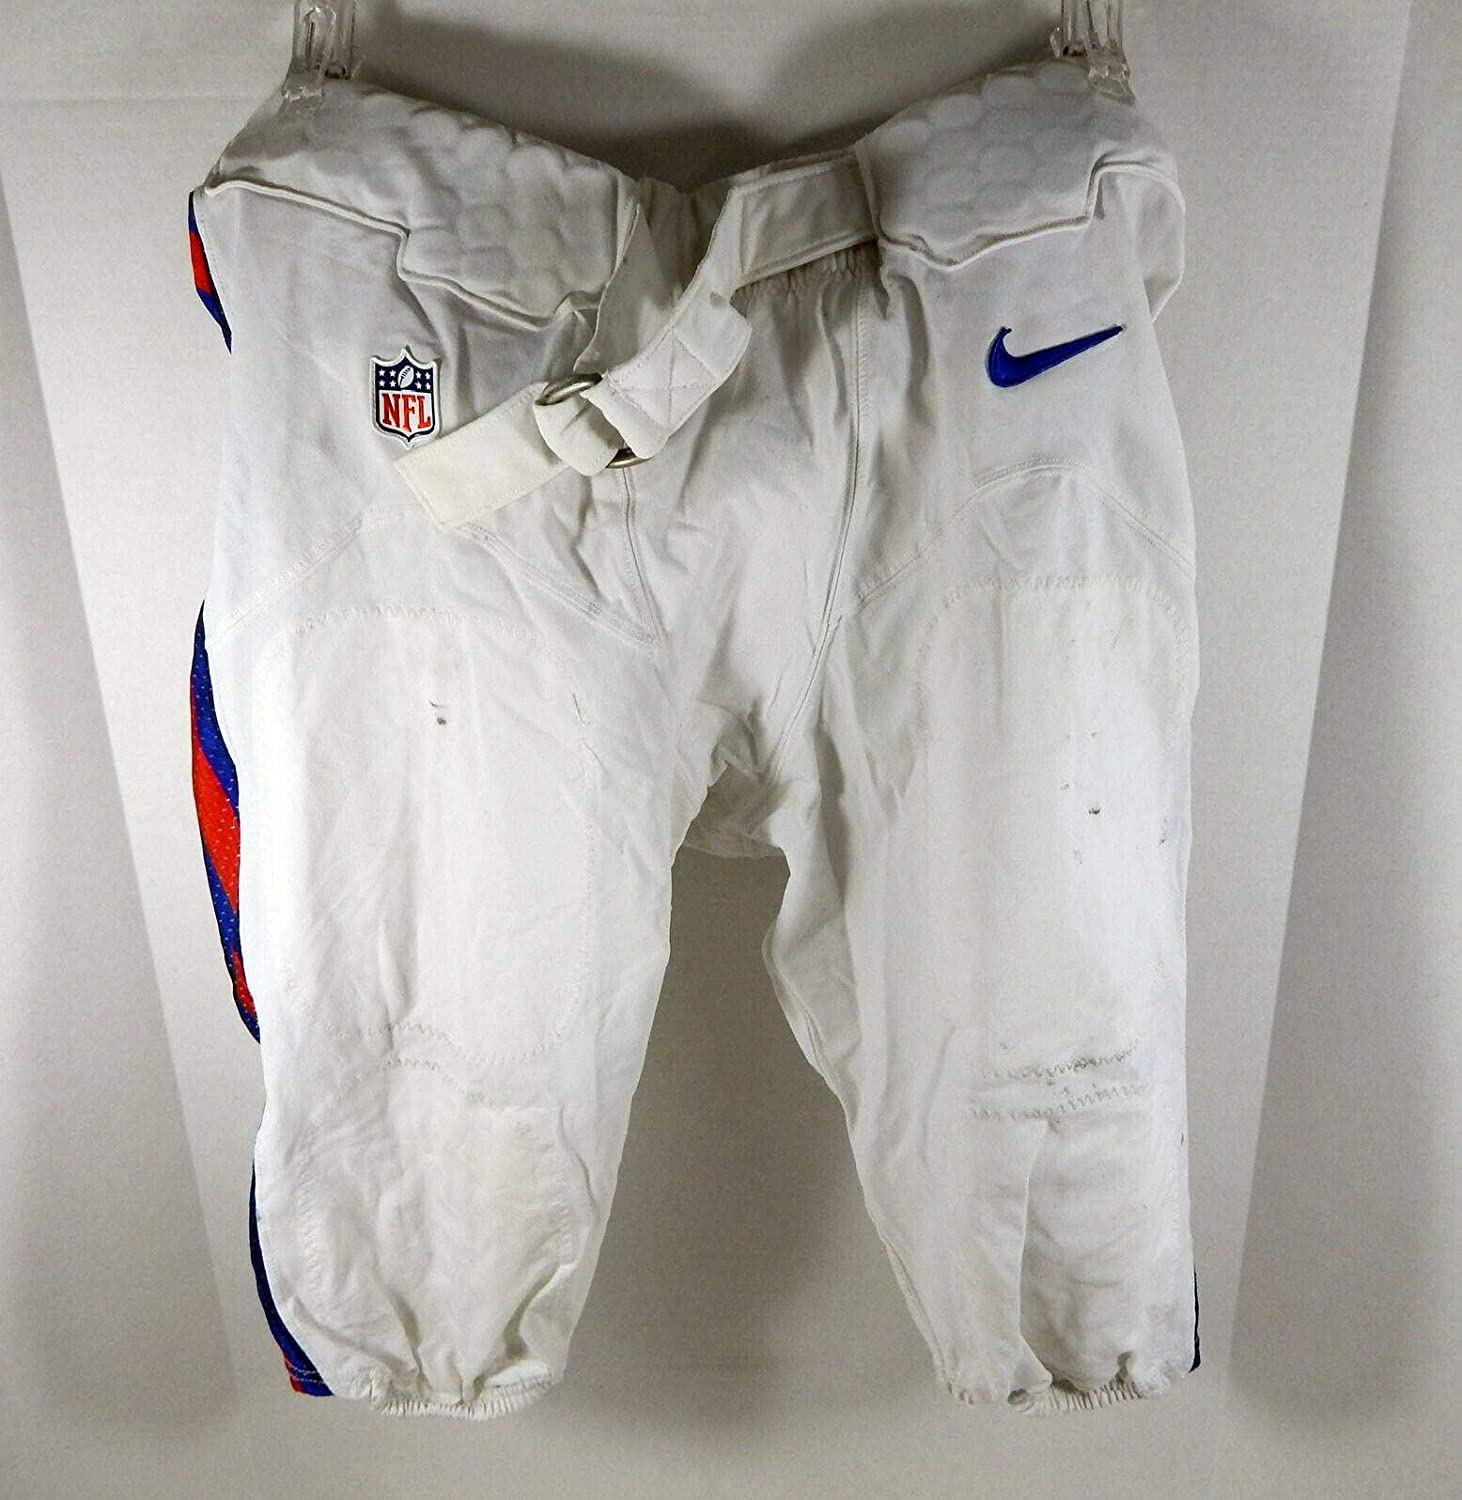 2012-15 Buffalo Bills #71 Game Used White Shorts 40 BILL0520 - NFL Game Used